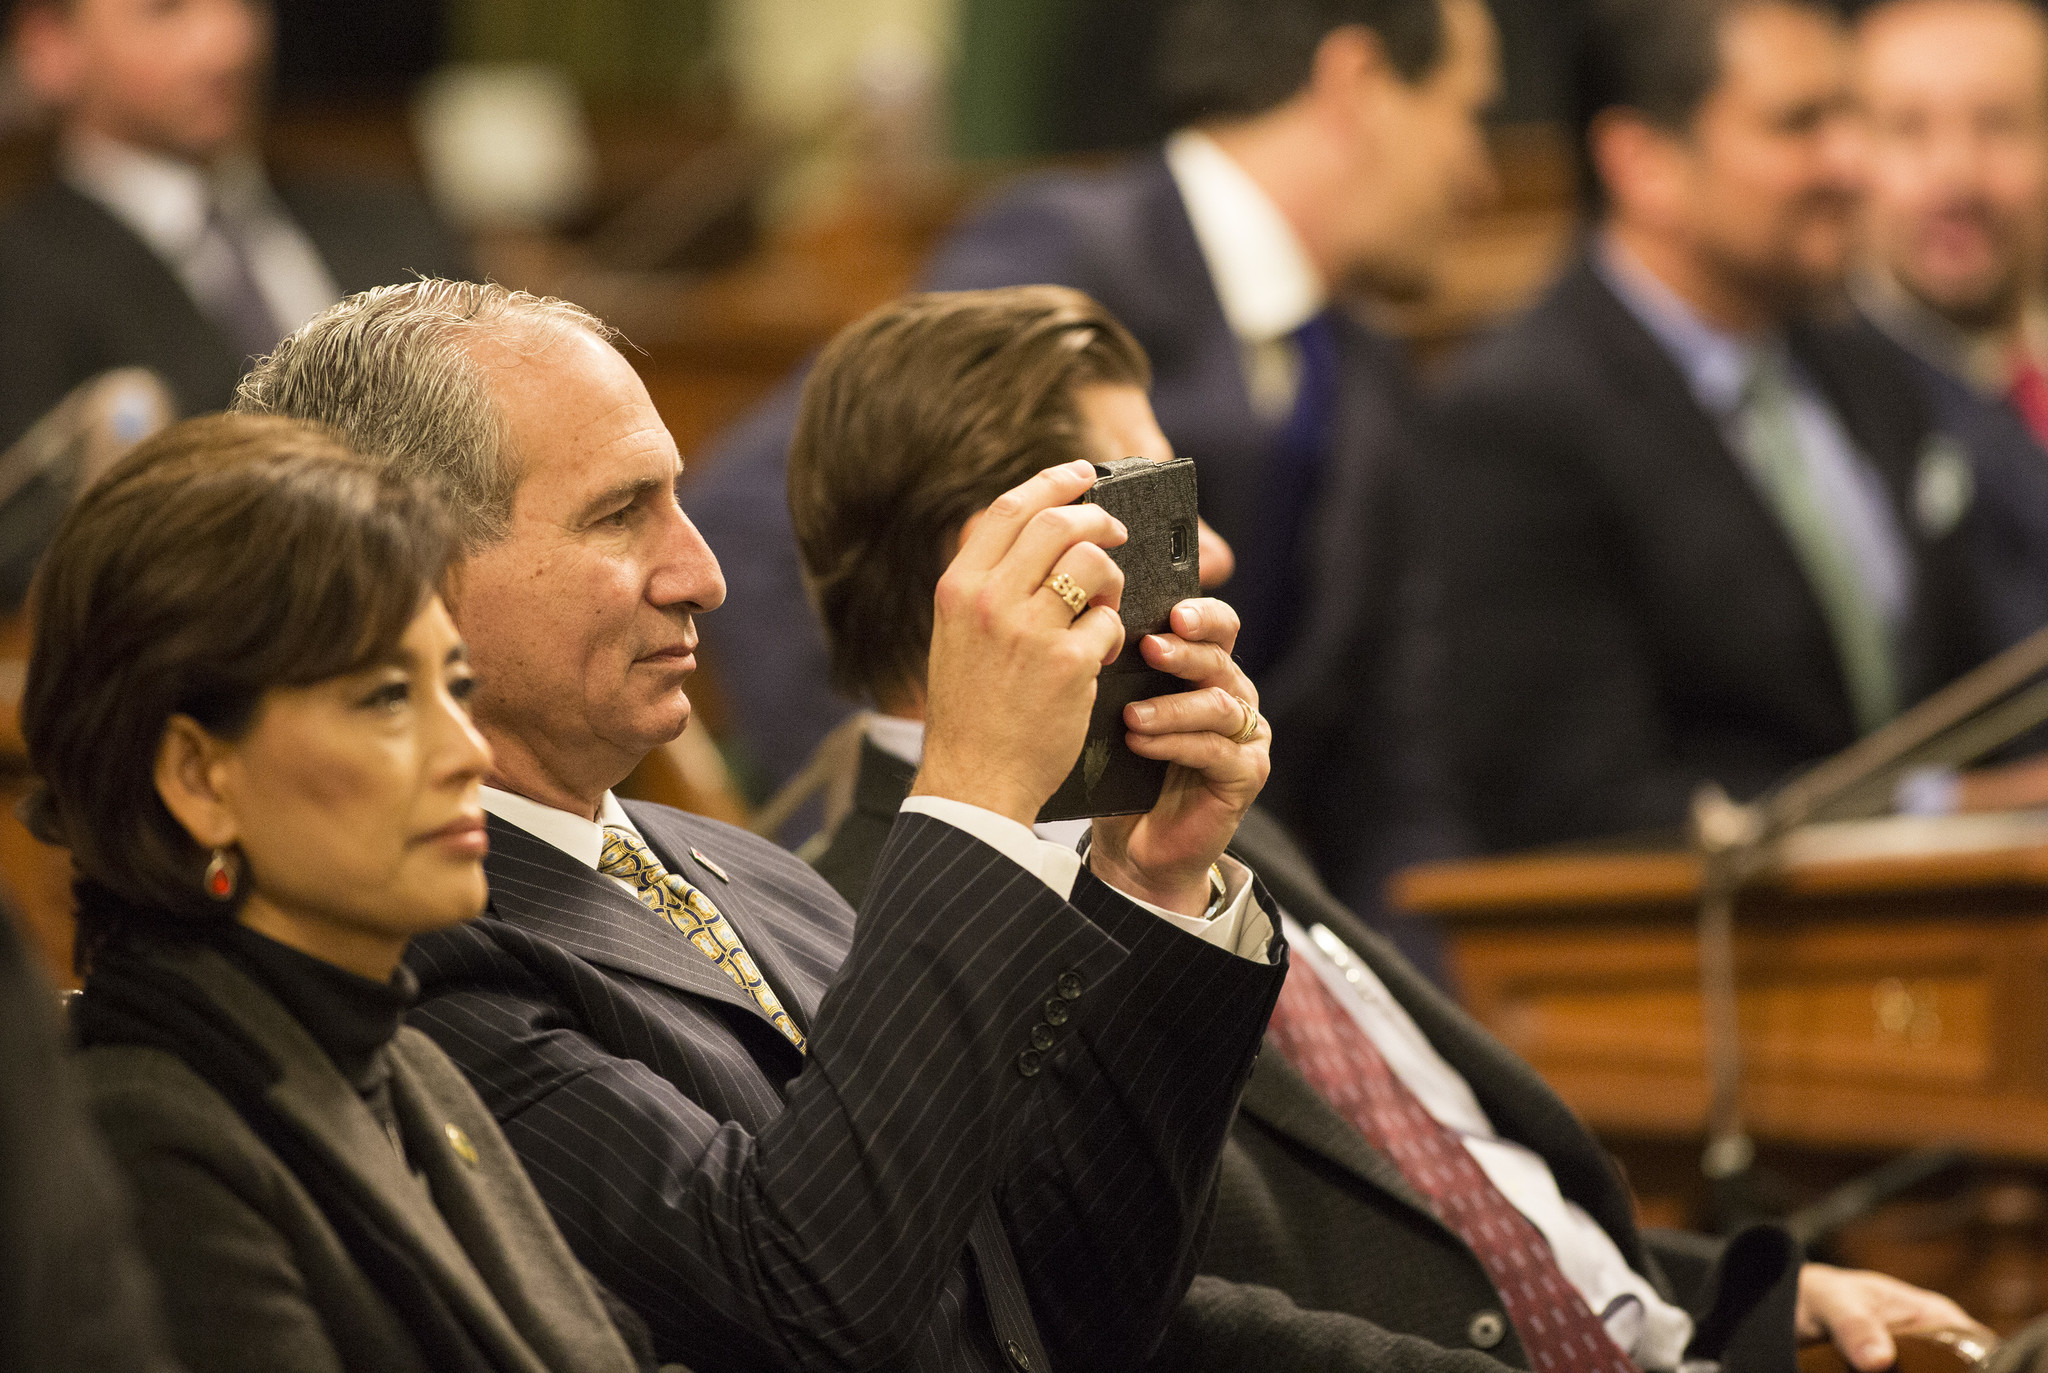 State Sen. Jeff Stone takes photographs during Gov. Jerry Brown's 2016 State of the State address.